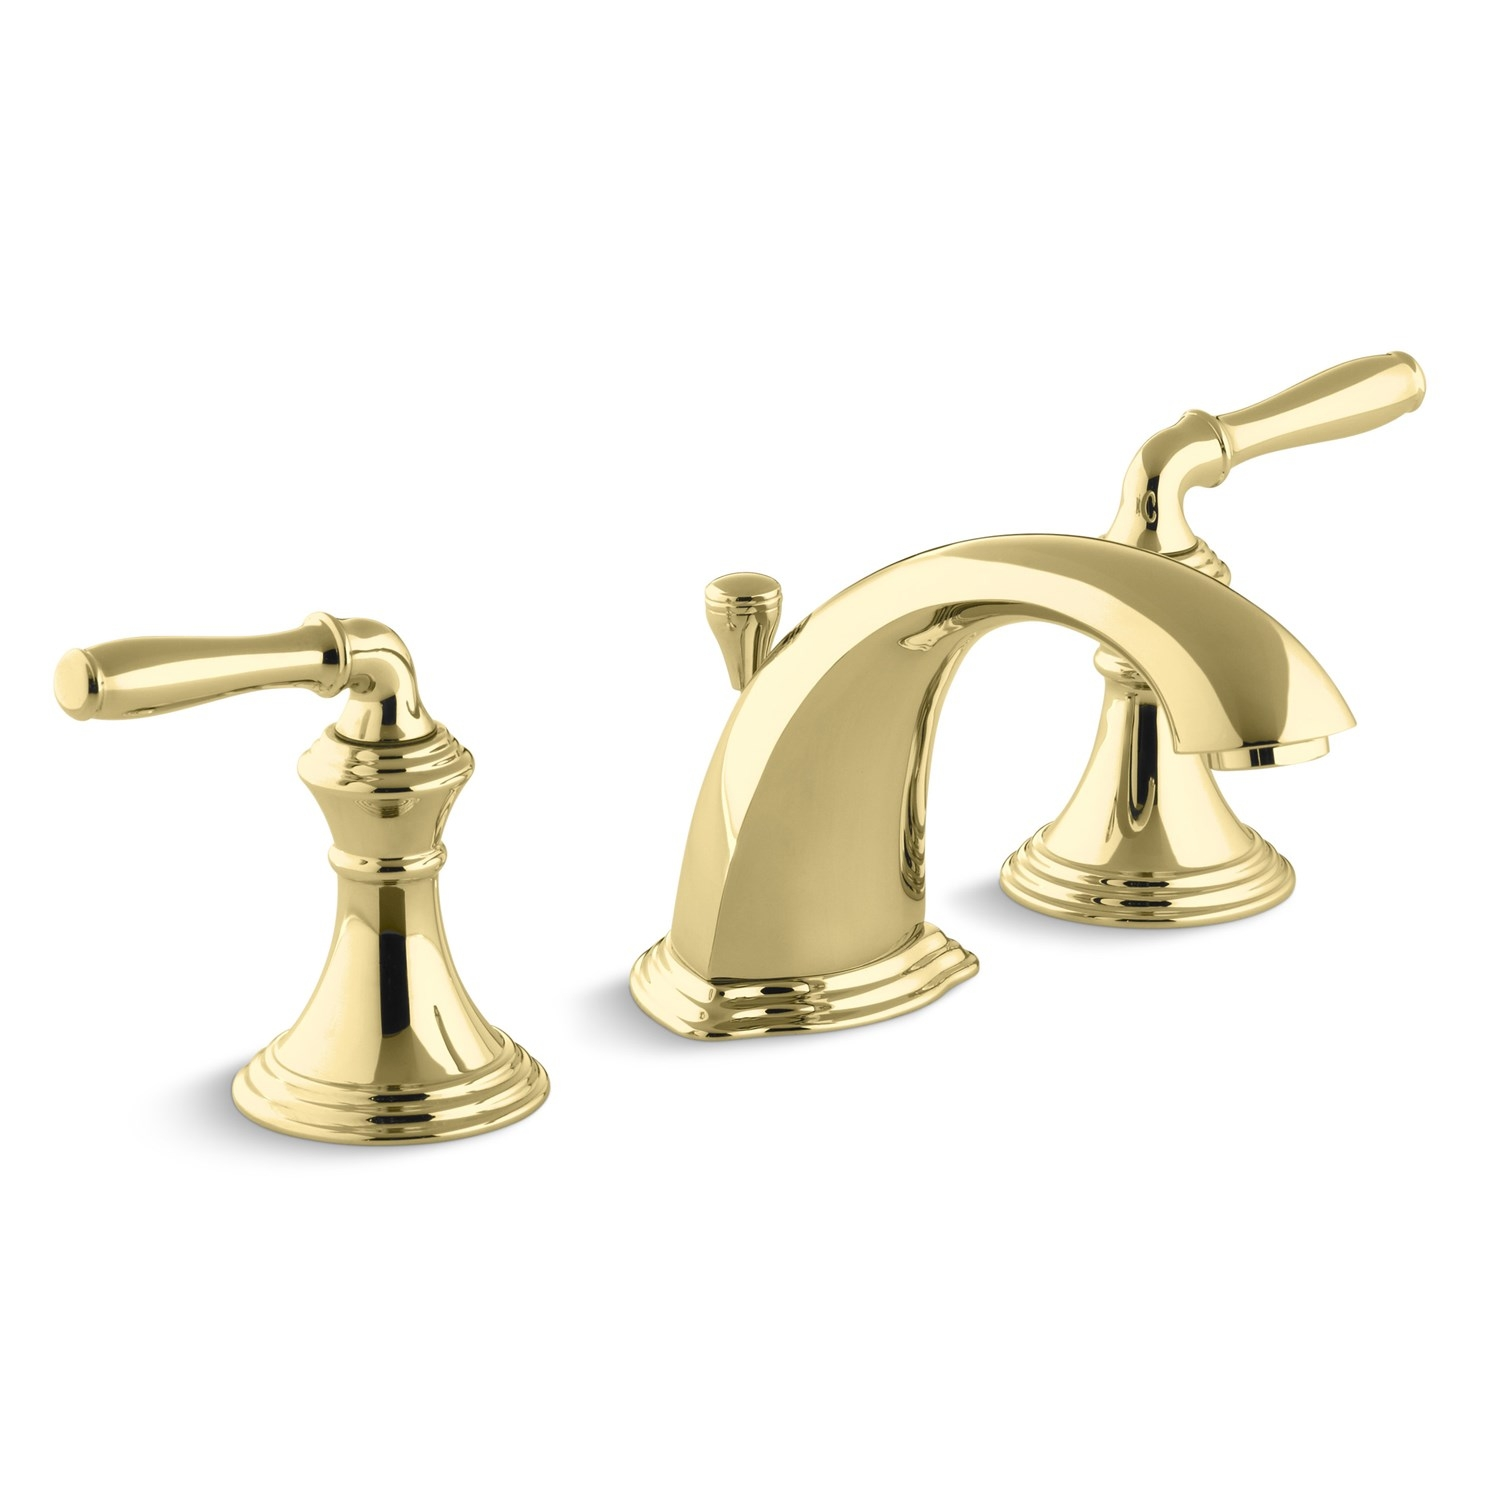 most popular kohler bathroom faucet most popular kohler bathroom faucet most popular bathroom faucets homeclick 1500 x 1500 2